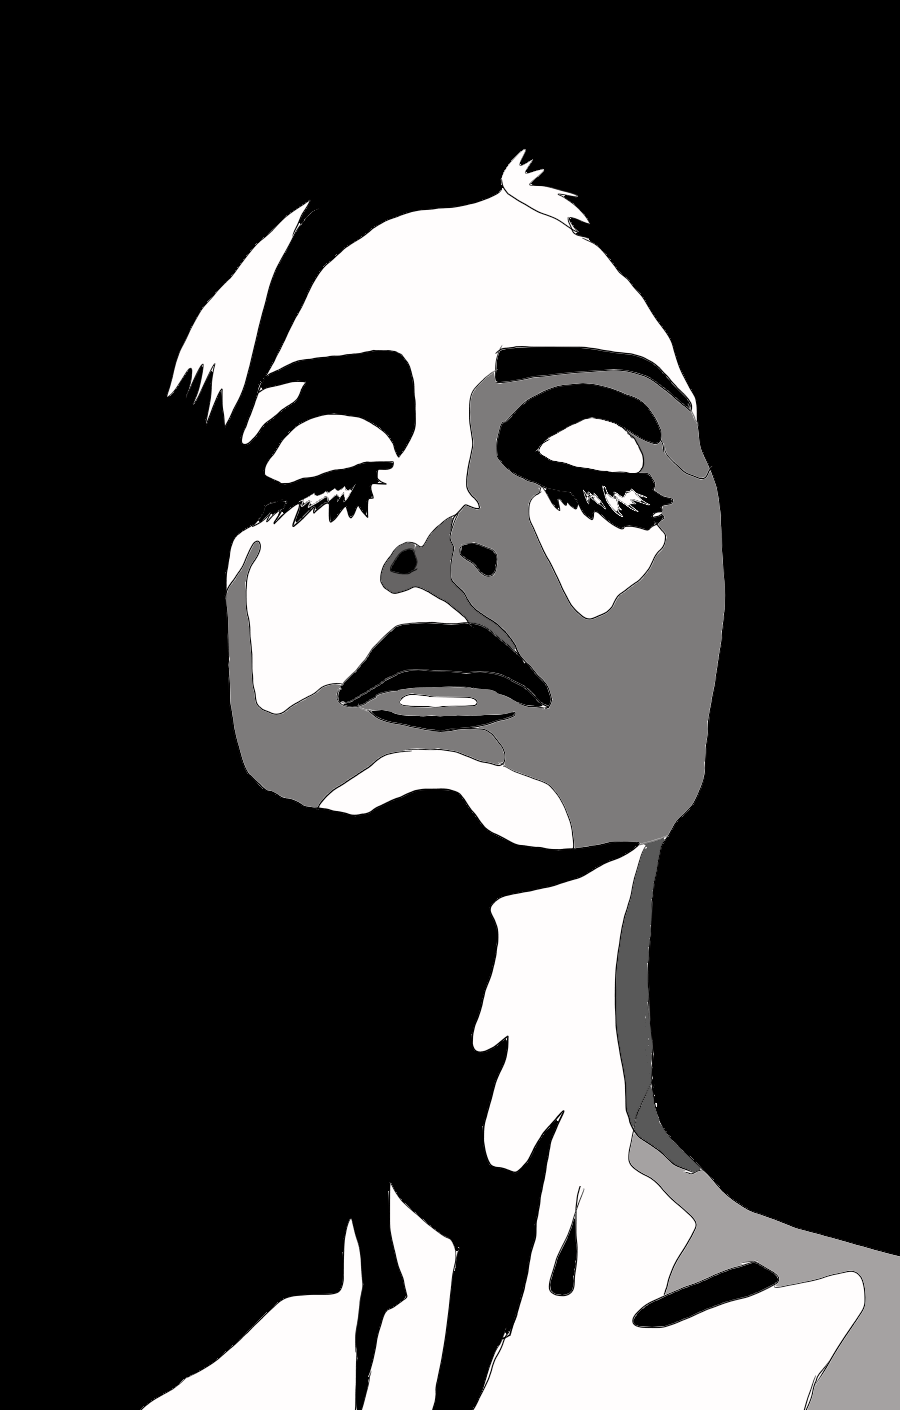 Pin By Waad999 Waad999 On Your Pinterest Likes Silhouette Art Abstract Art Painting Pop Art Drawing